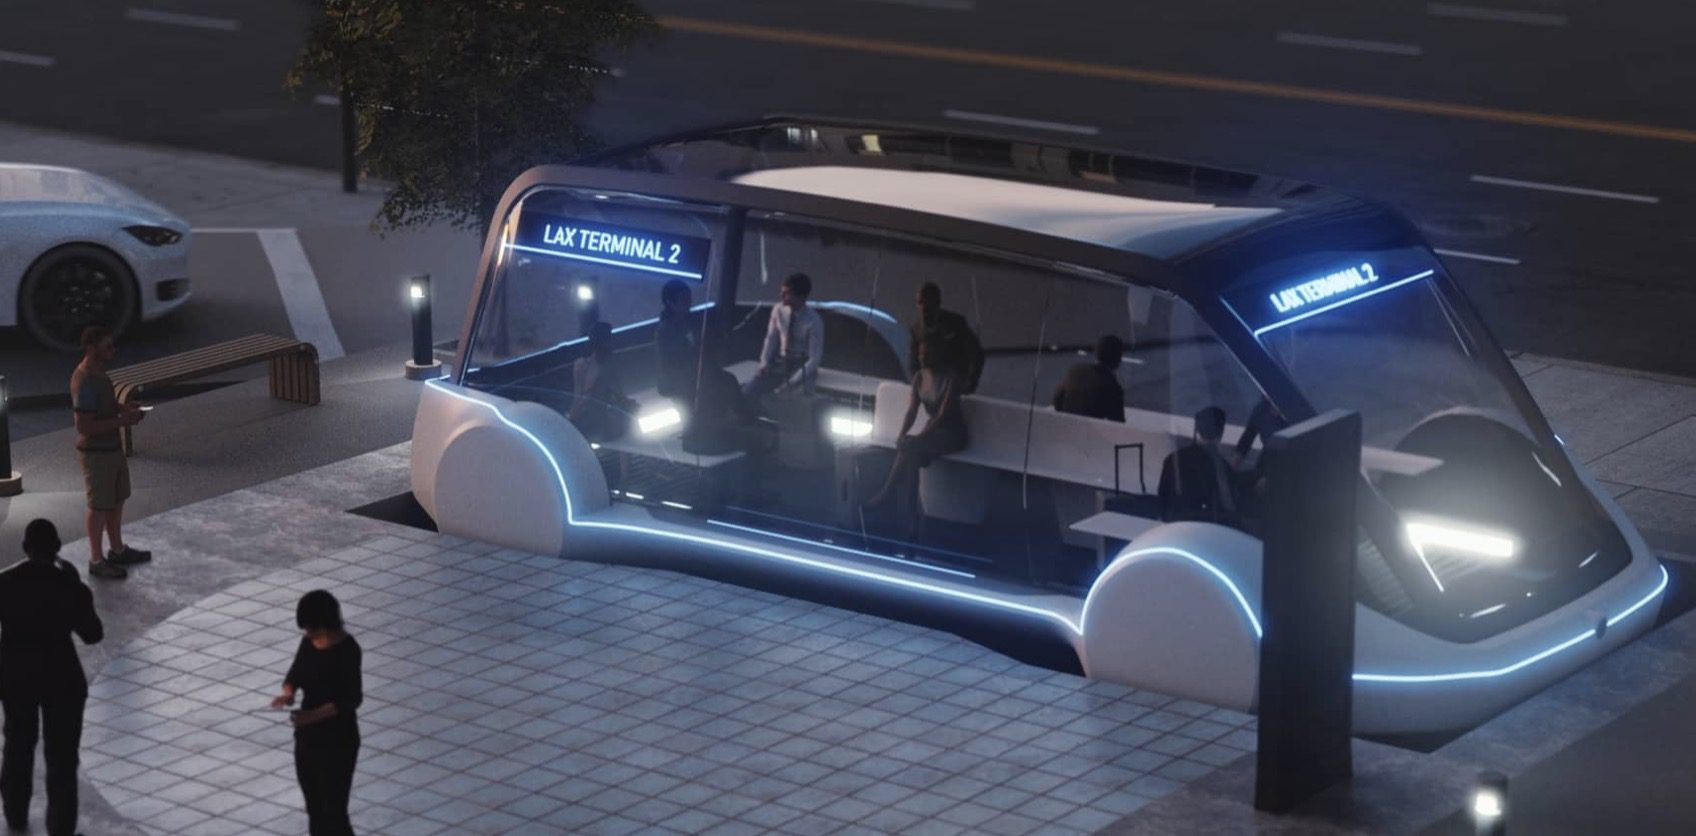 Elon Musk's Boring Company to unveil 'fully road legal autonomous transport cars'